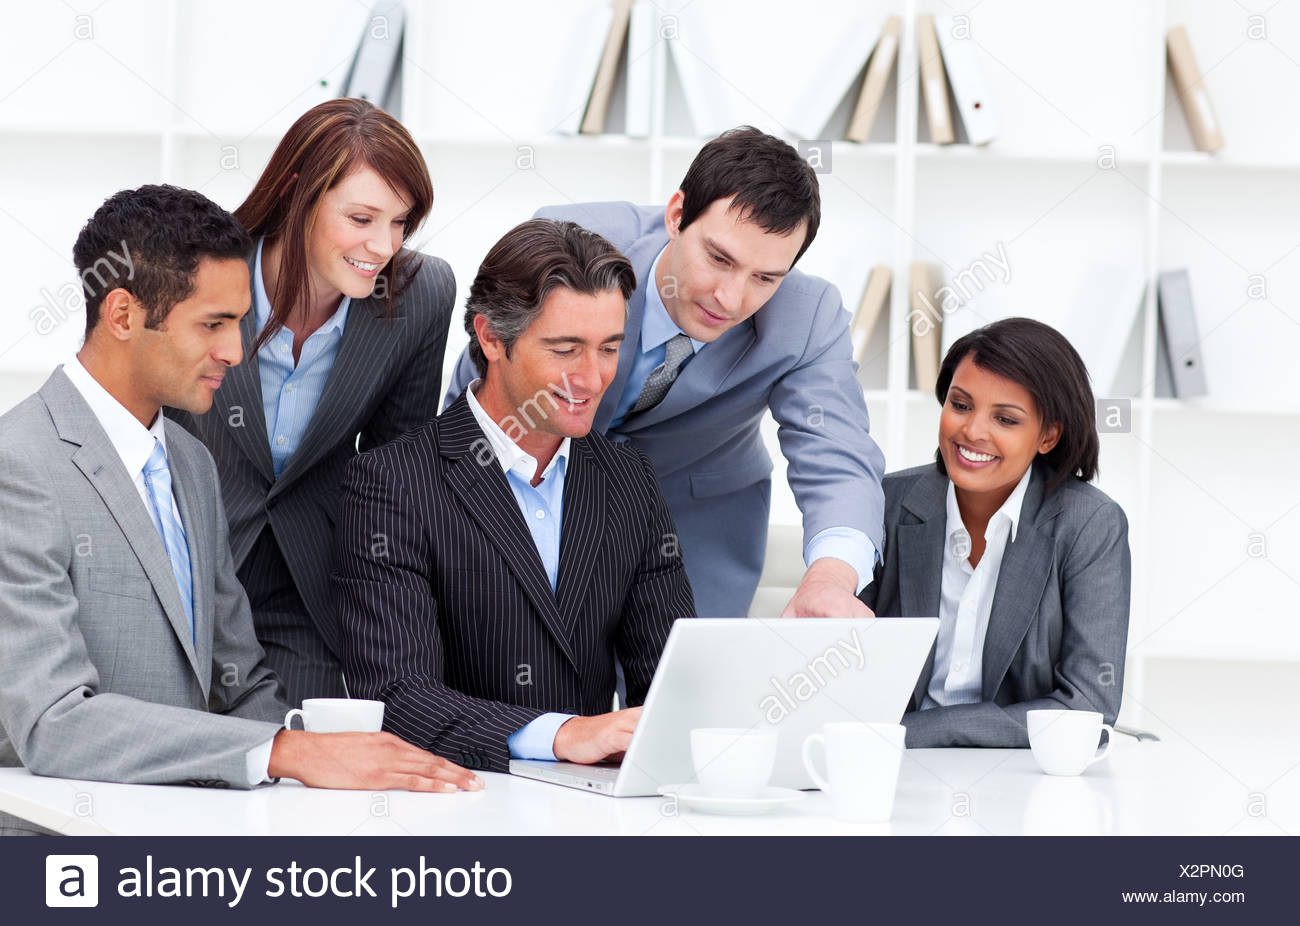 Multi-cultural business team looking at a laptop - Stock Image